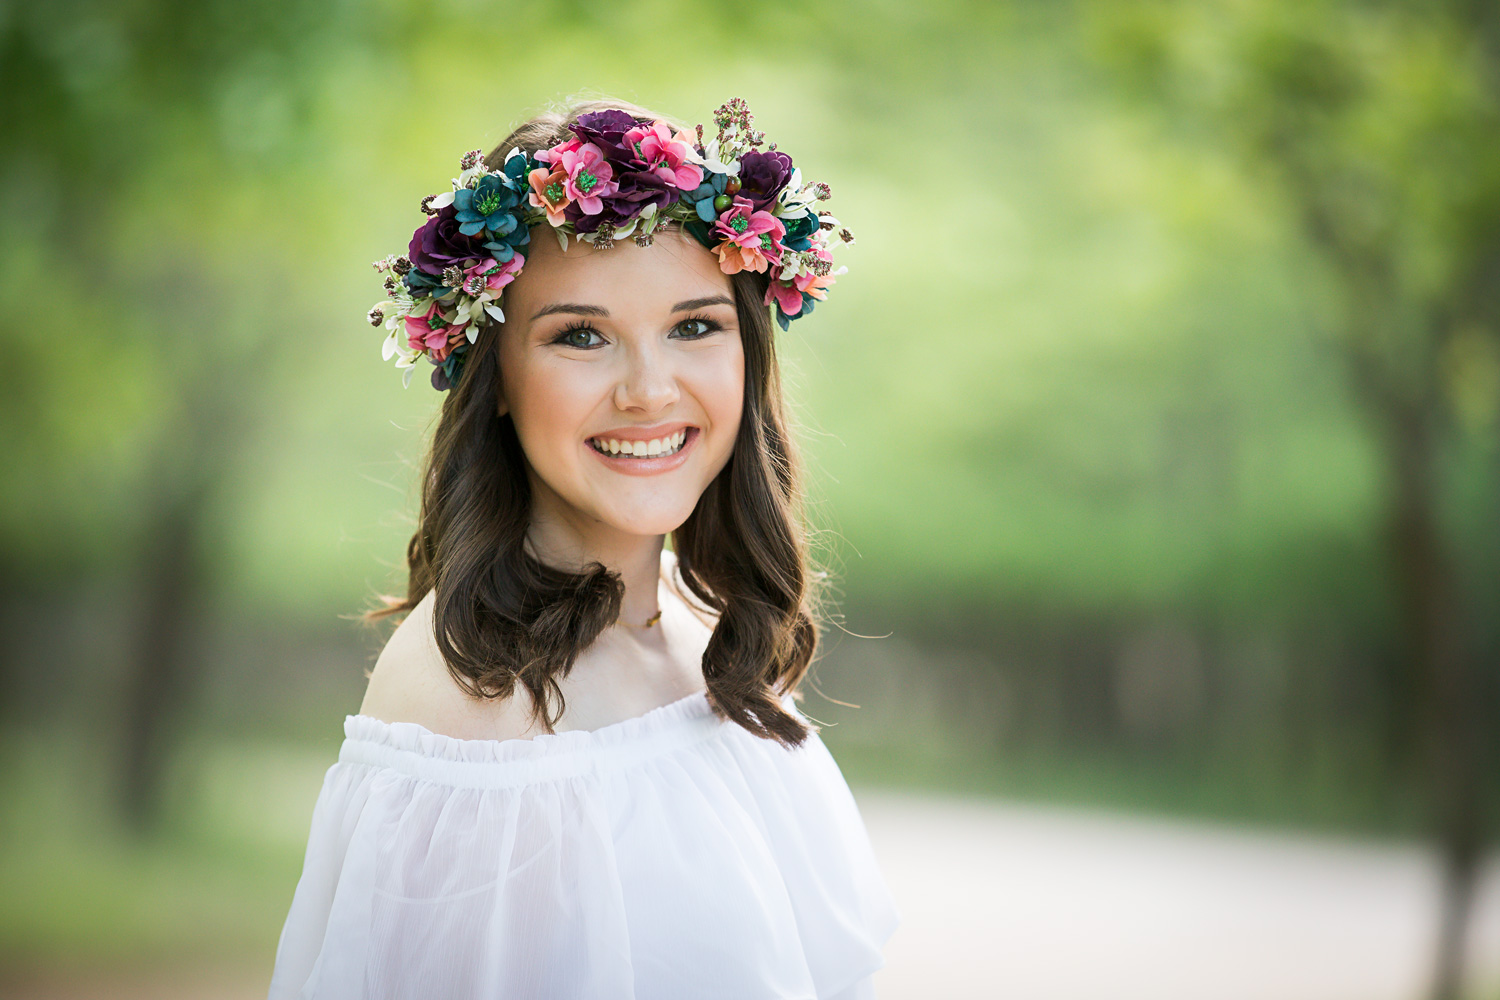 High school senior girl wearing white top and flower crown, looking and smiling at camera.